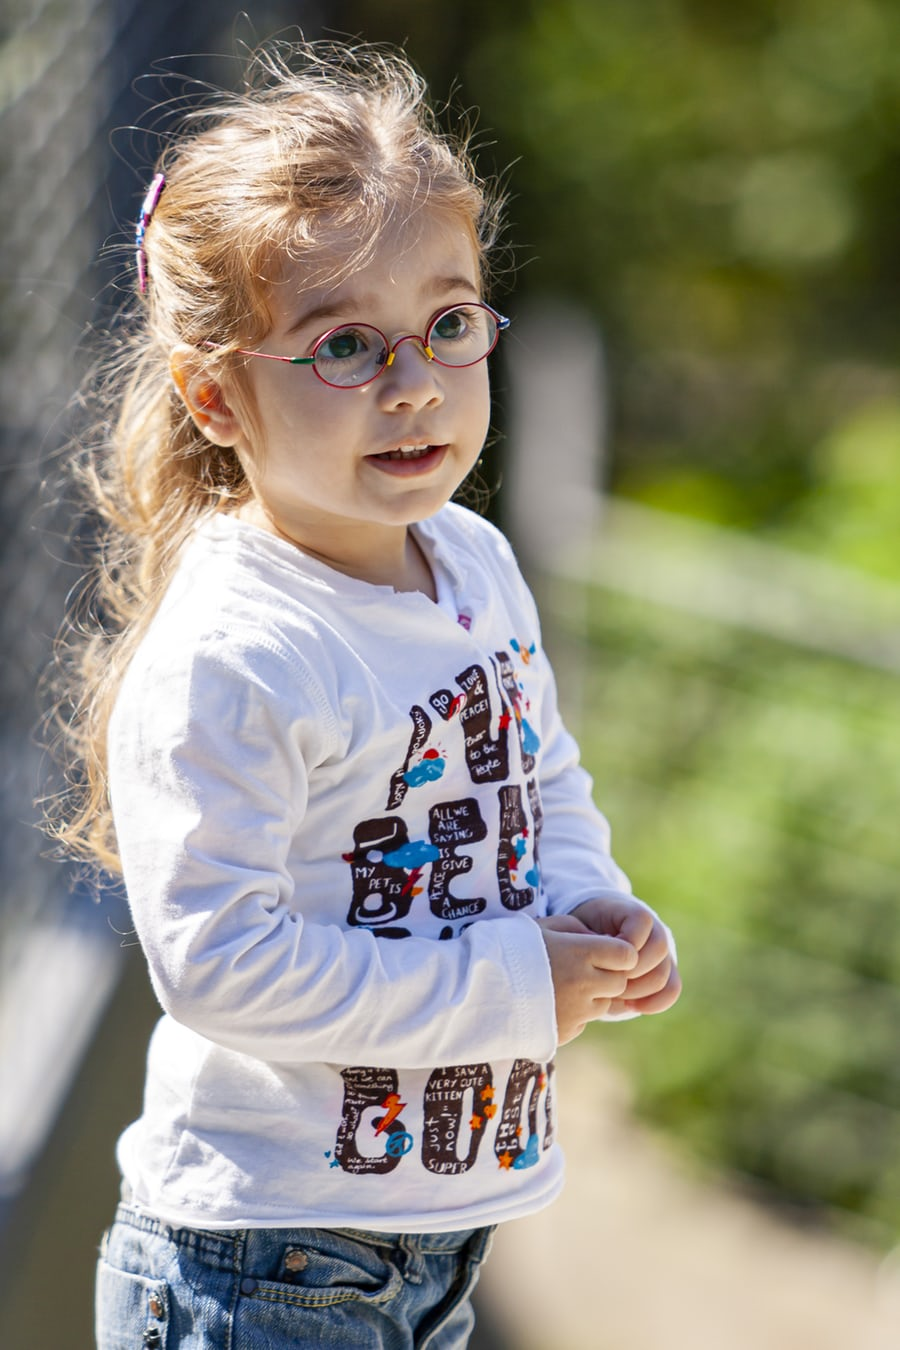 How Can You Encourage Your Child To Wear Their Glasses?